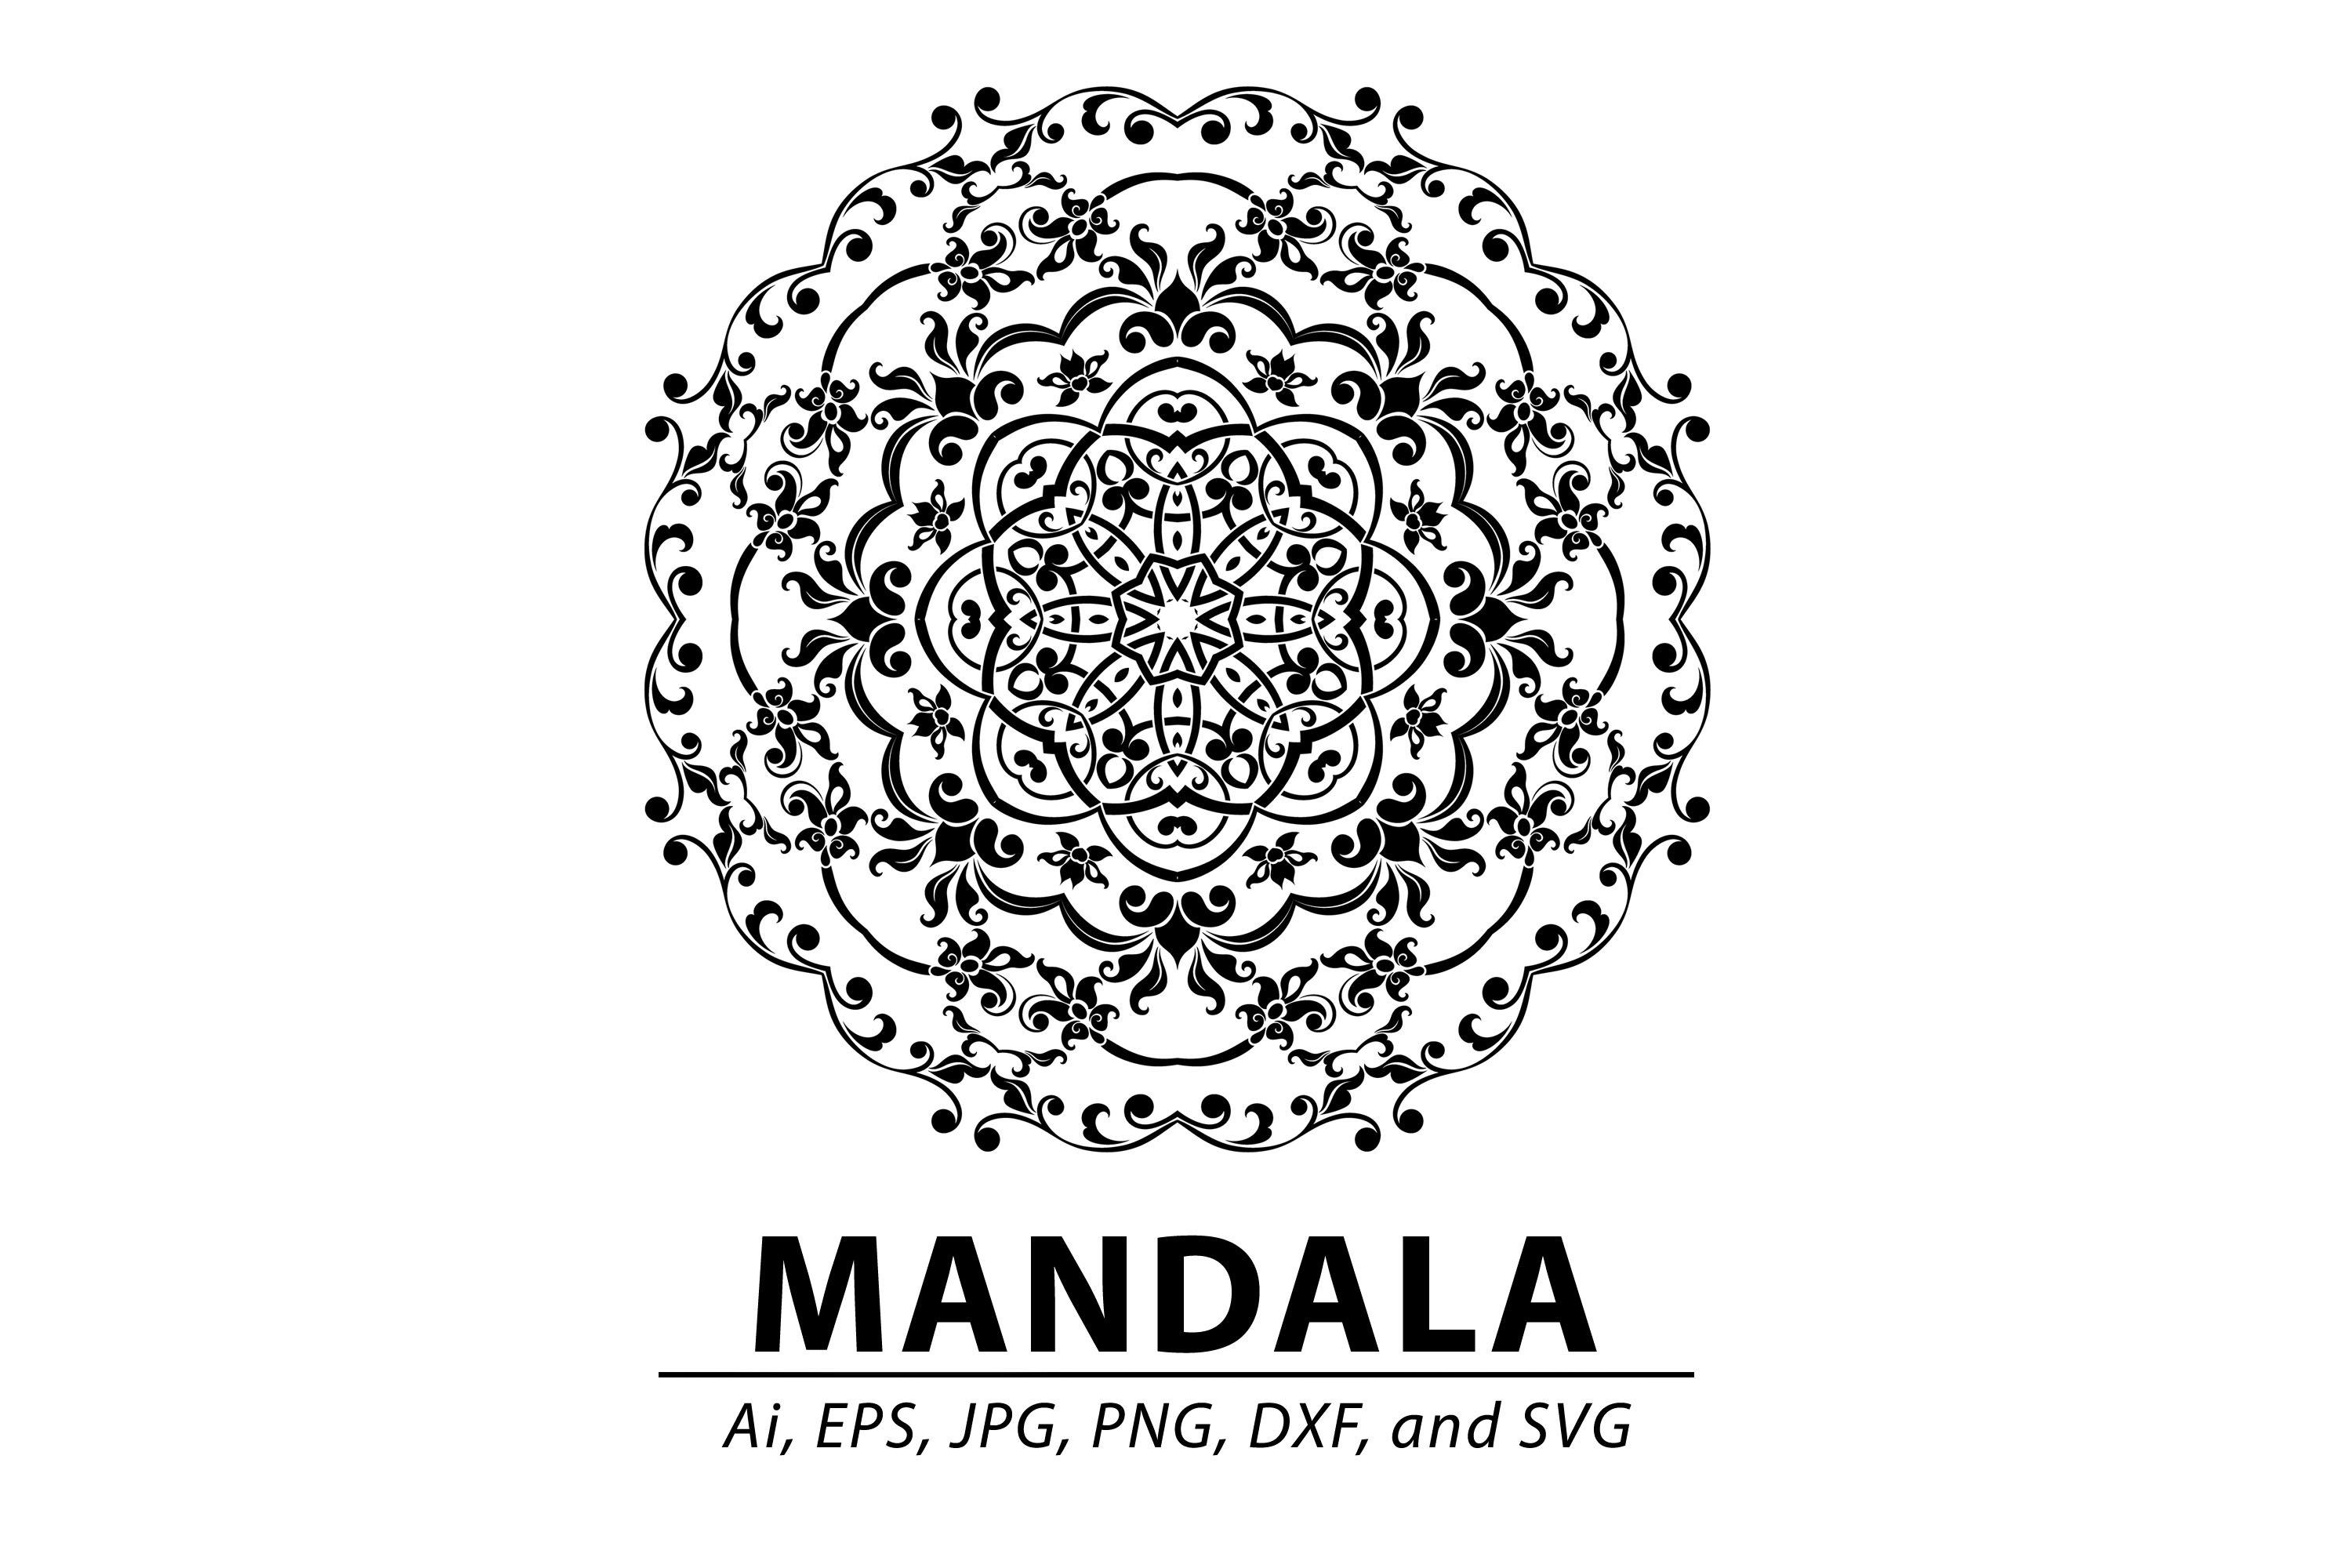 Mandala Graphic By Redsugardesign Creative Fabrica